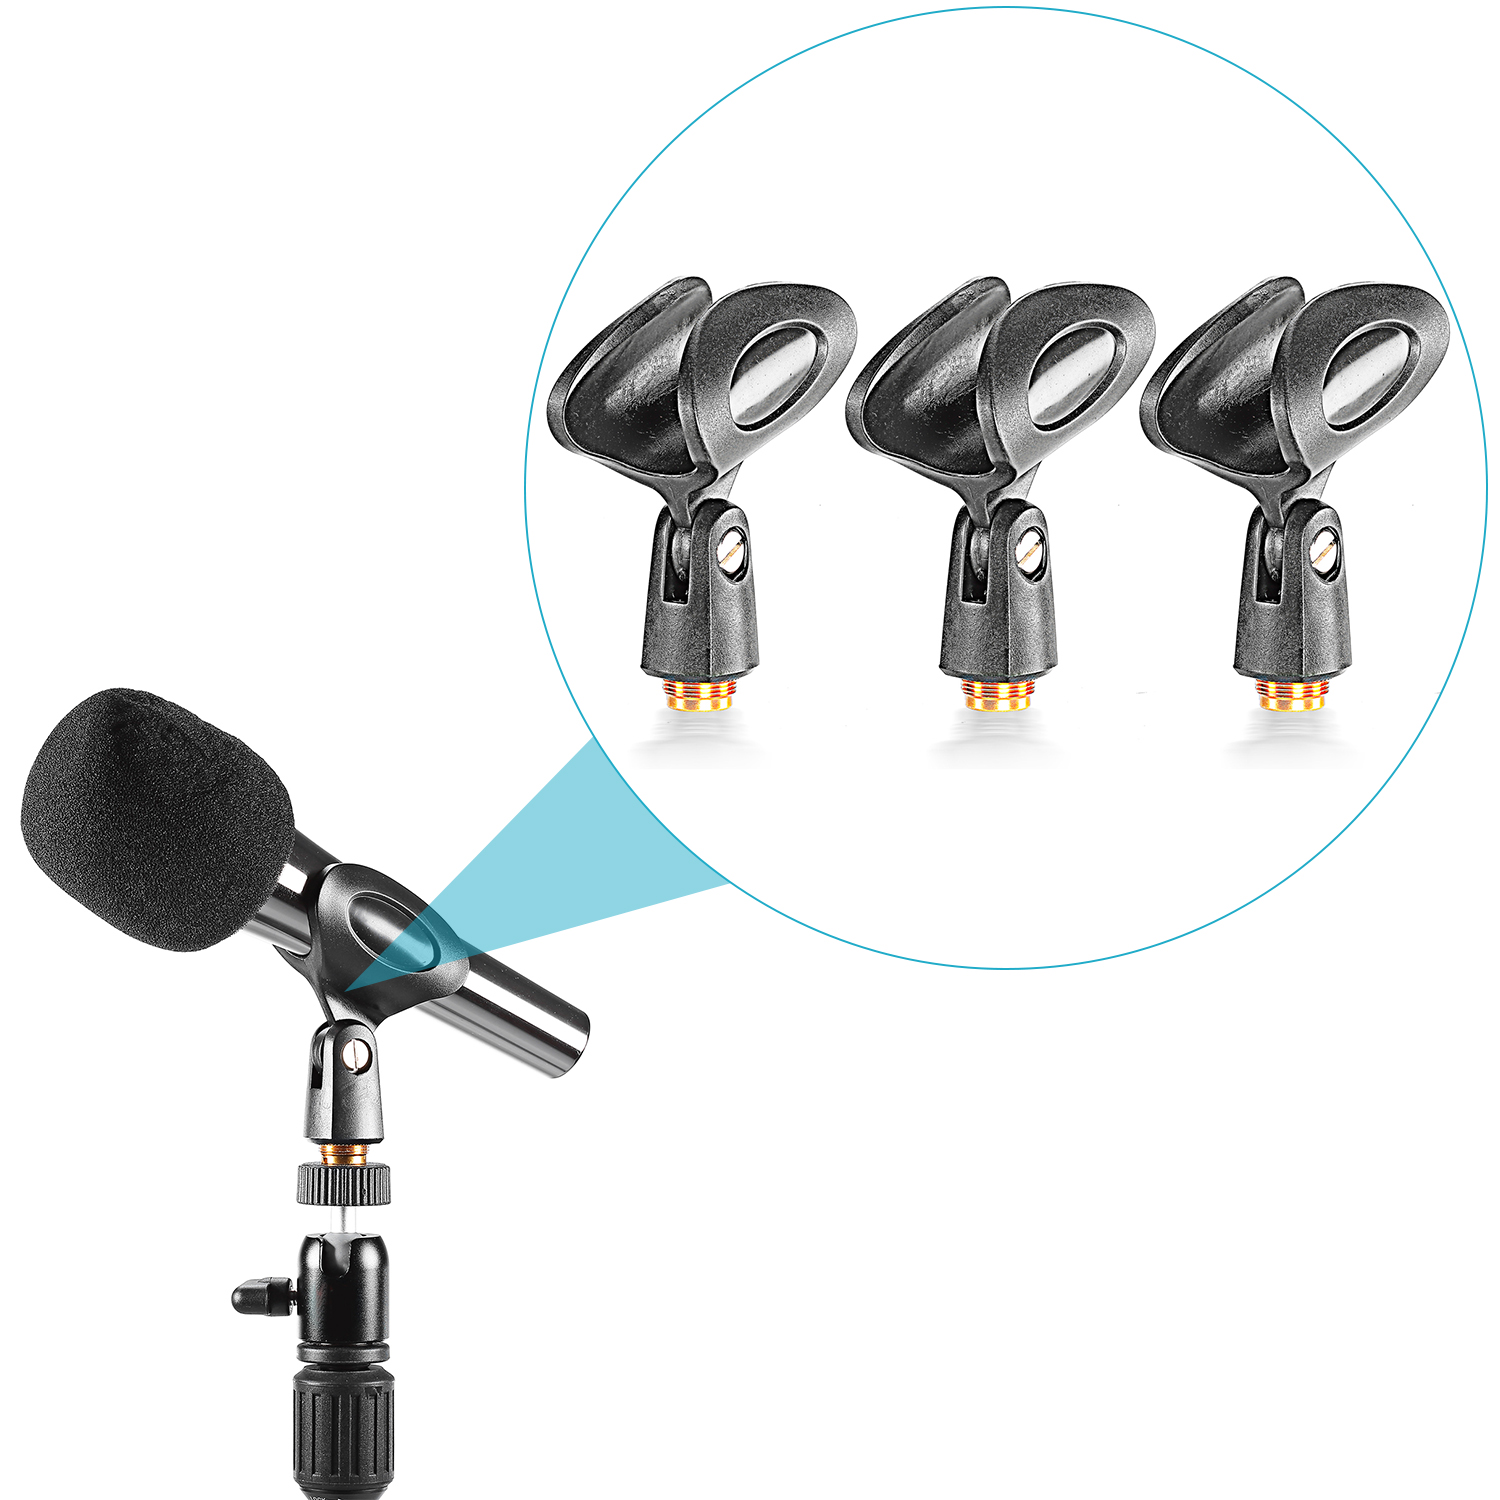 Neewer 3-Pack Black Universal Microphone Clip Holders with 5/8-Inch Male to 3/8-Inch Female Metal Nut Adapters for Handheld Mic - ANKUX Tech Co., Ltd